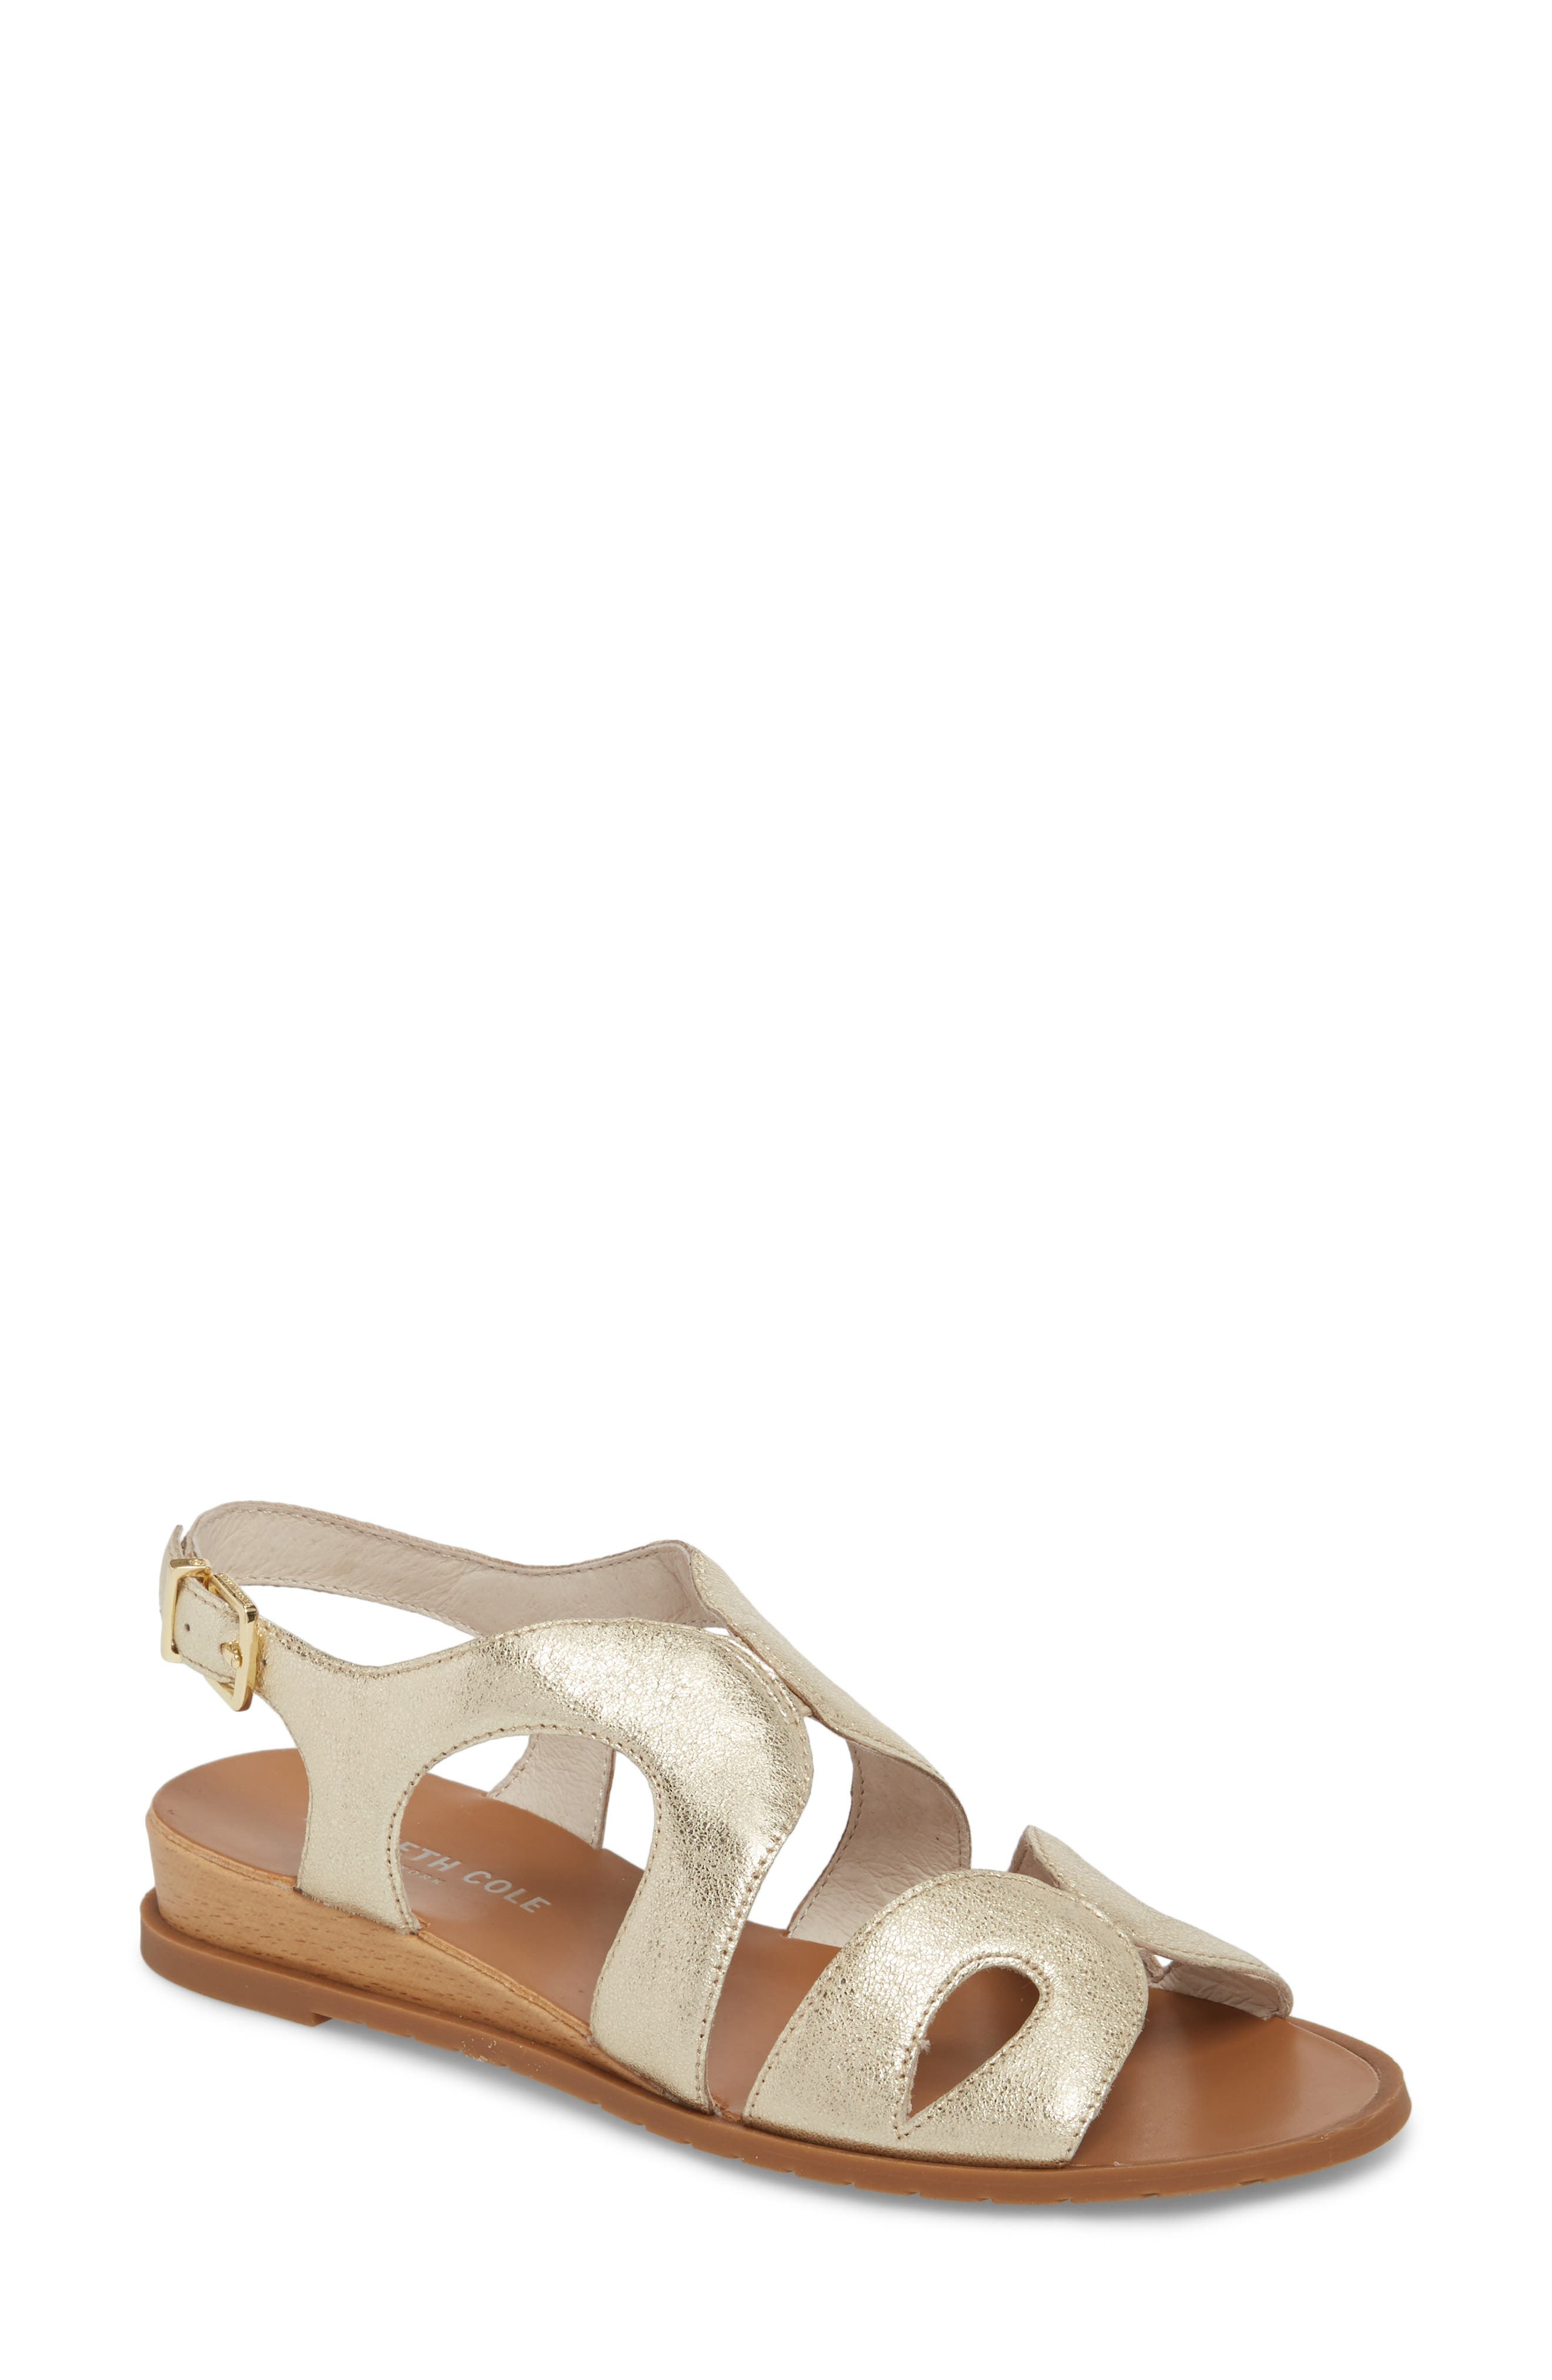 Kenneth Cole New York Jules Sandal (Women)